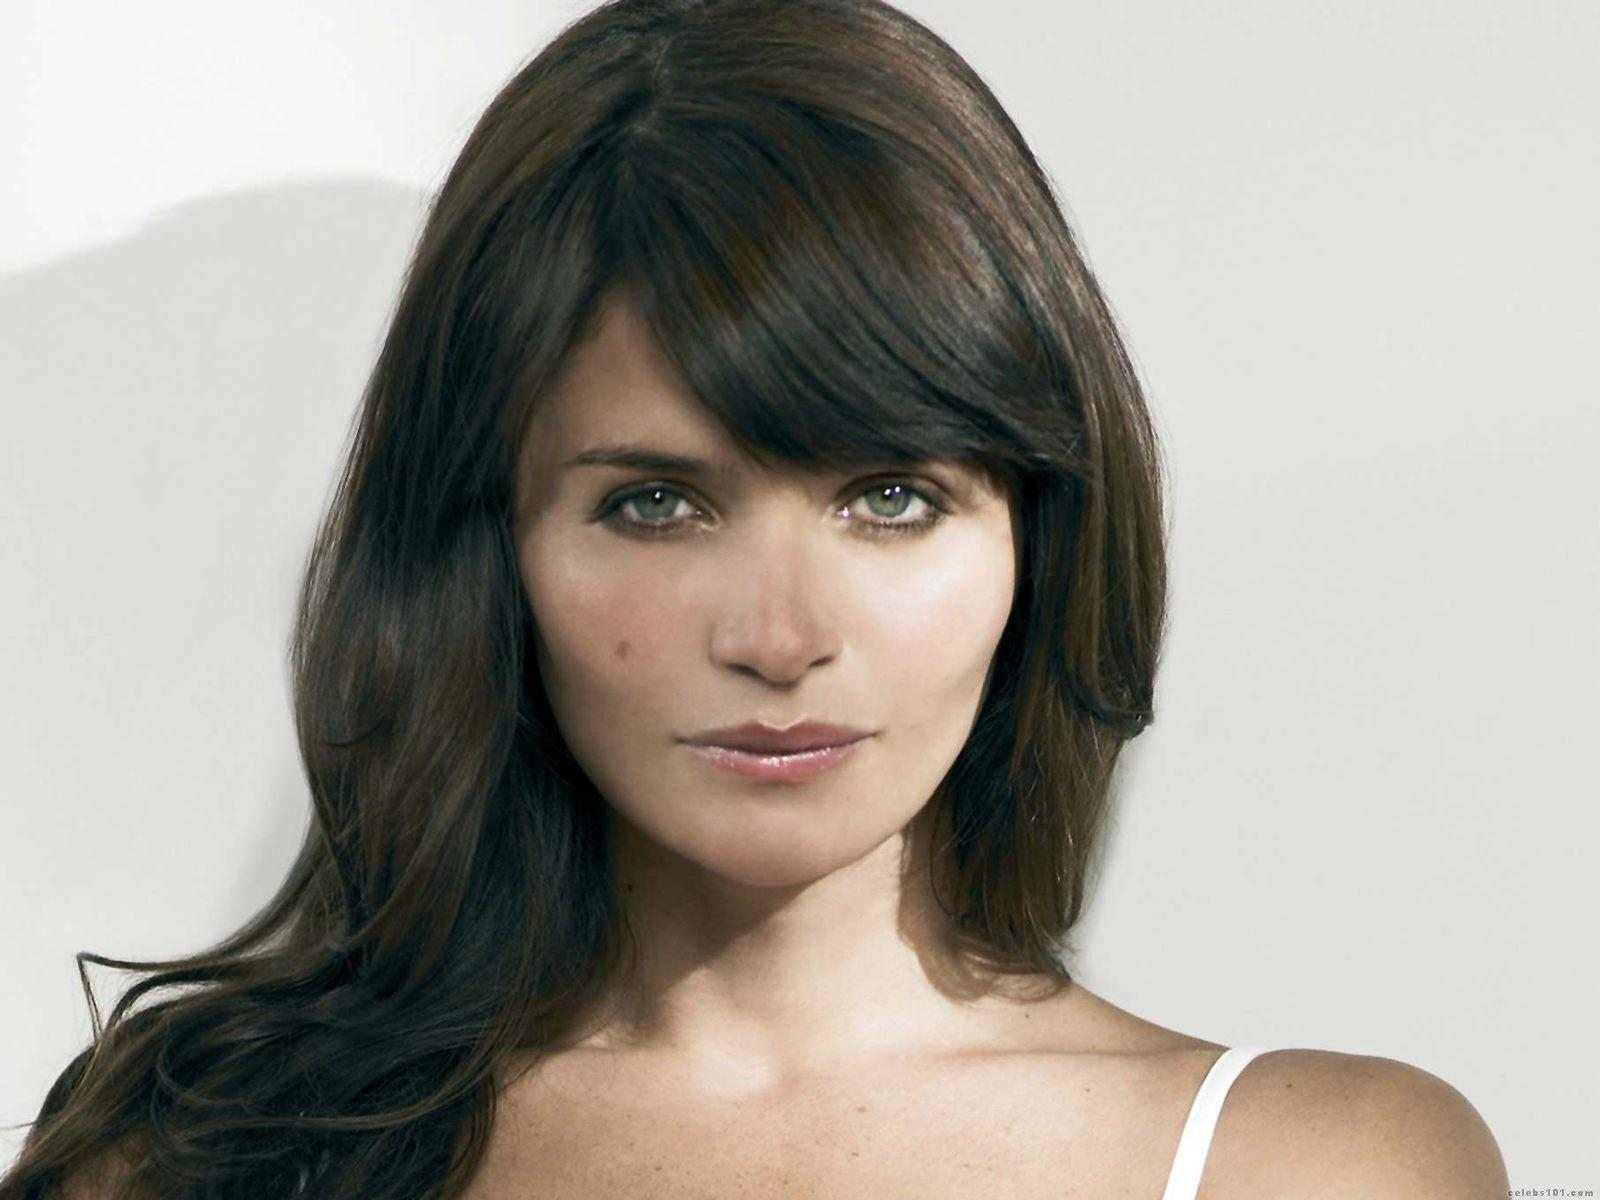 Helena Christensen High quality wallpaper size 1600x1200 of Helena  - Image Great